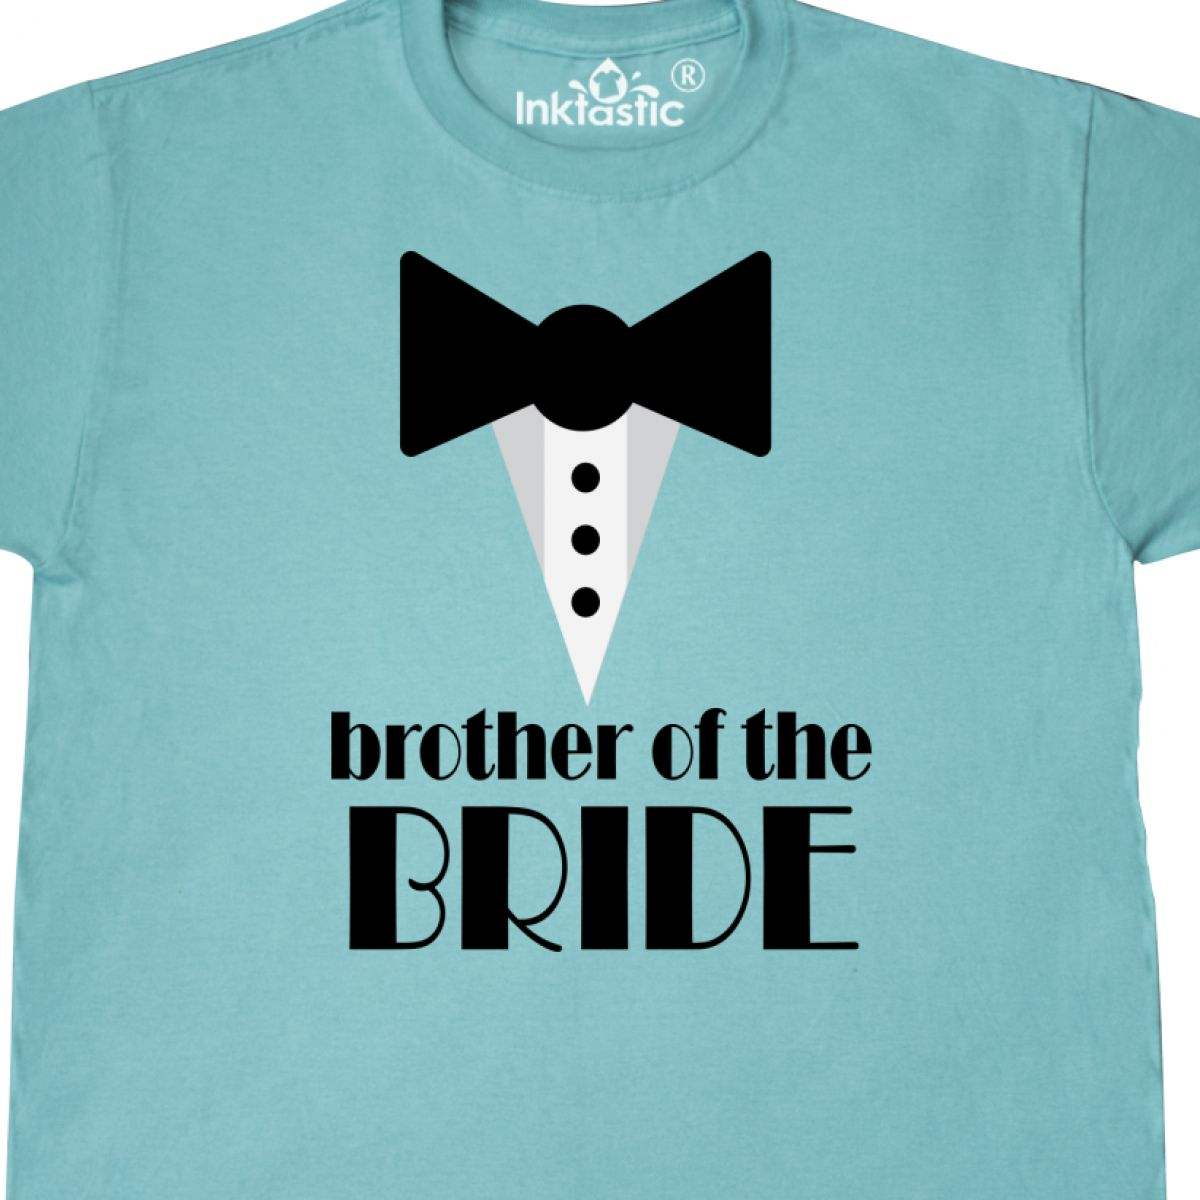 Inktastic Brother Of The Bride T-Shirt Gift Brides Wedding Party ...